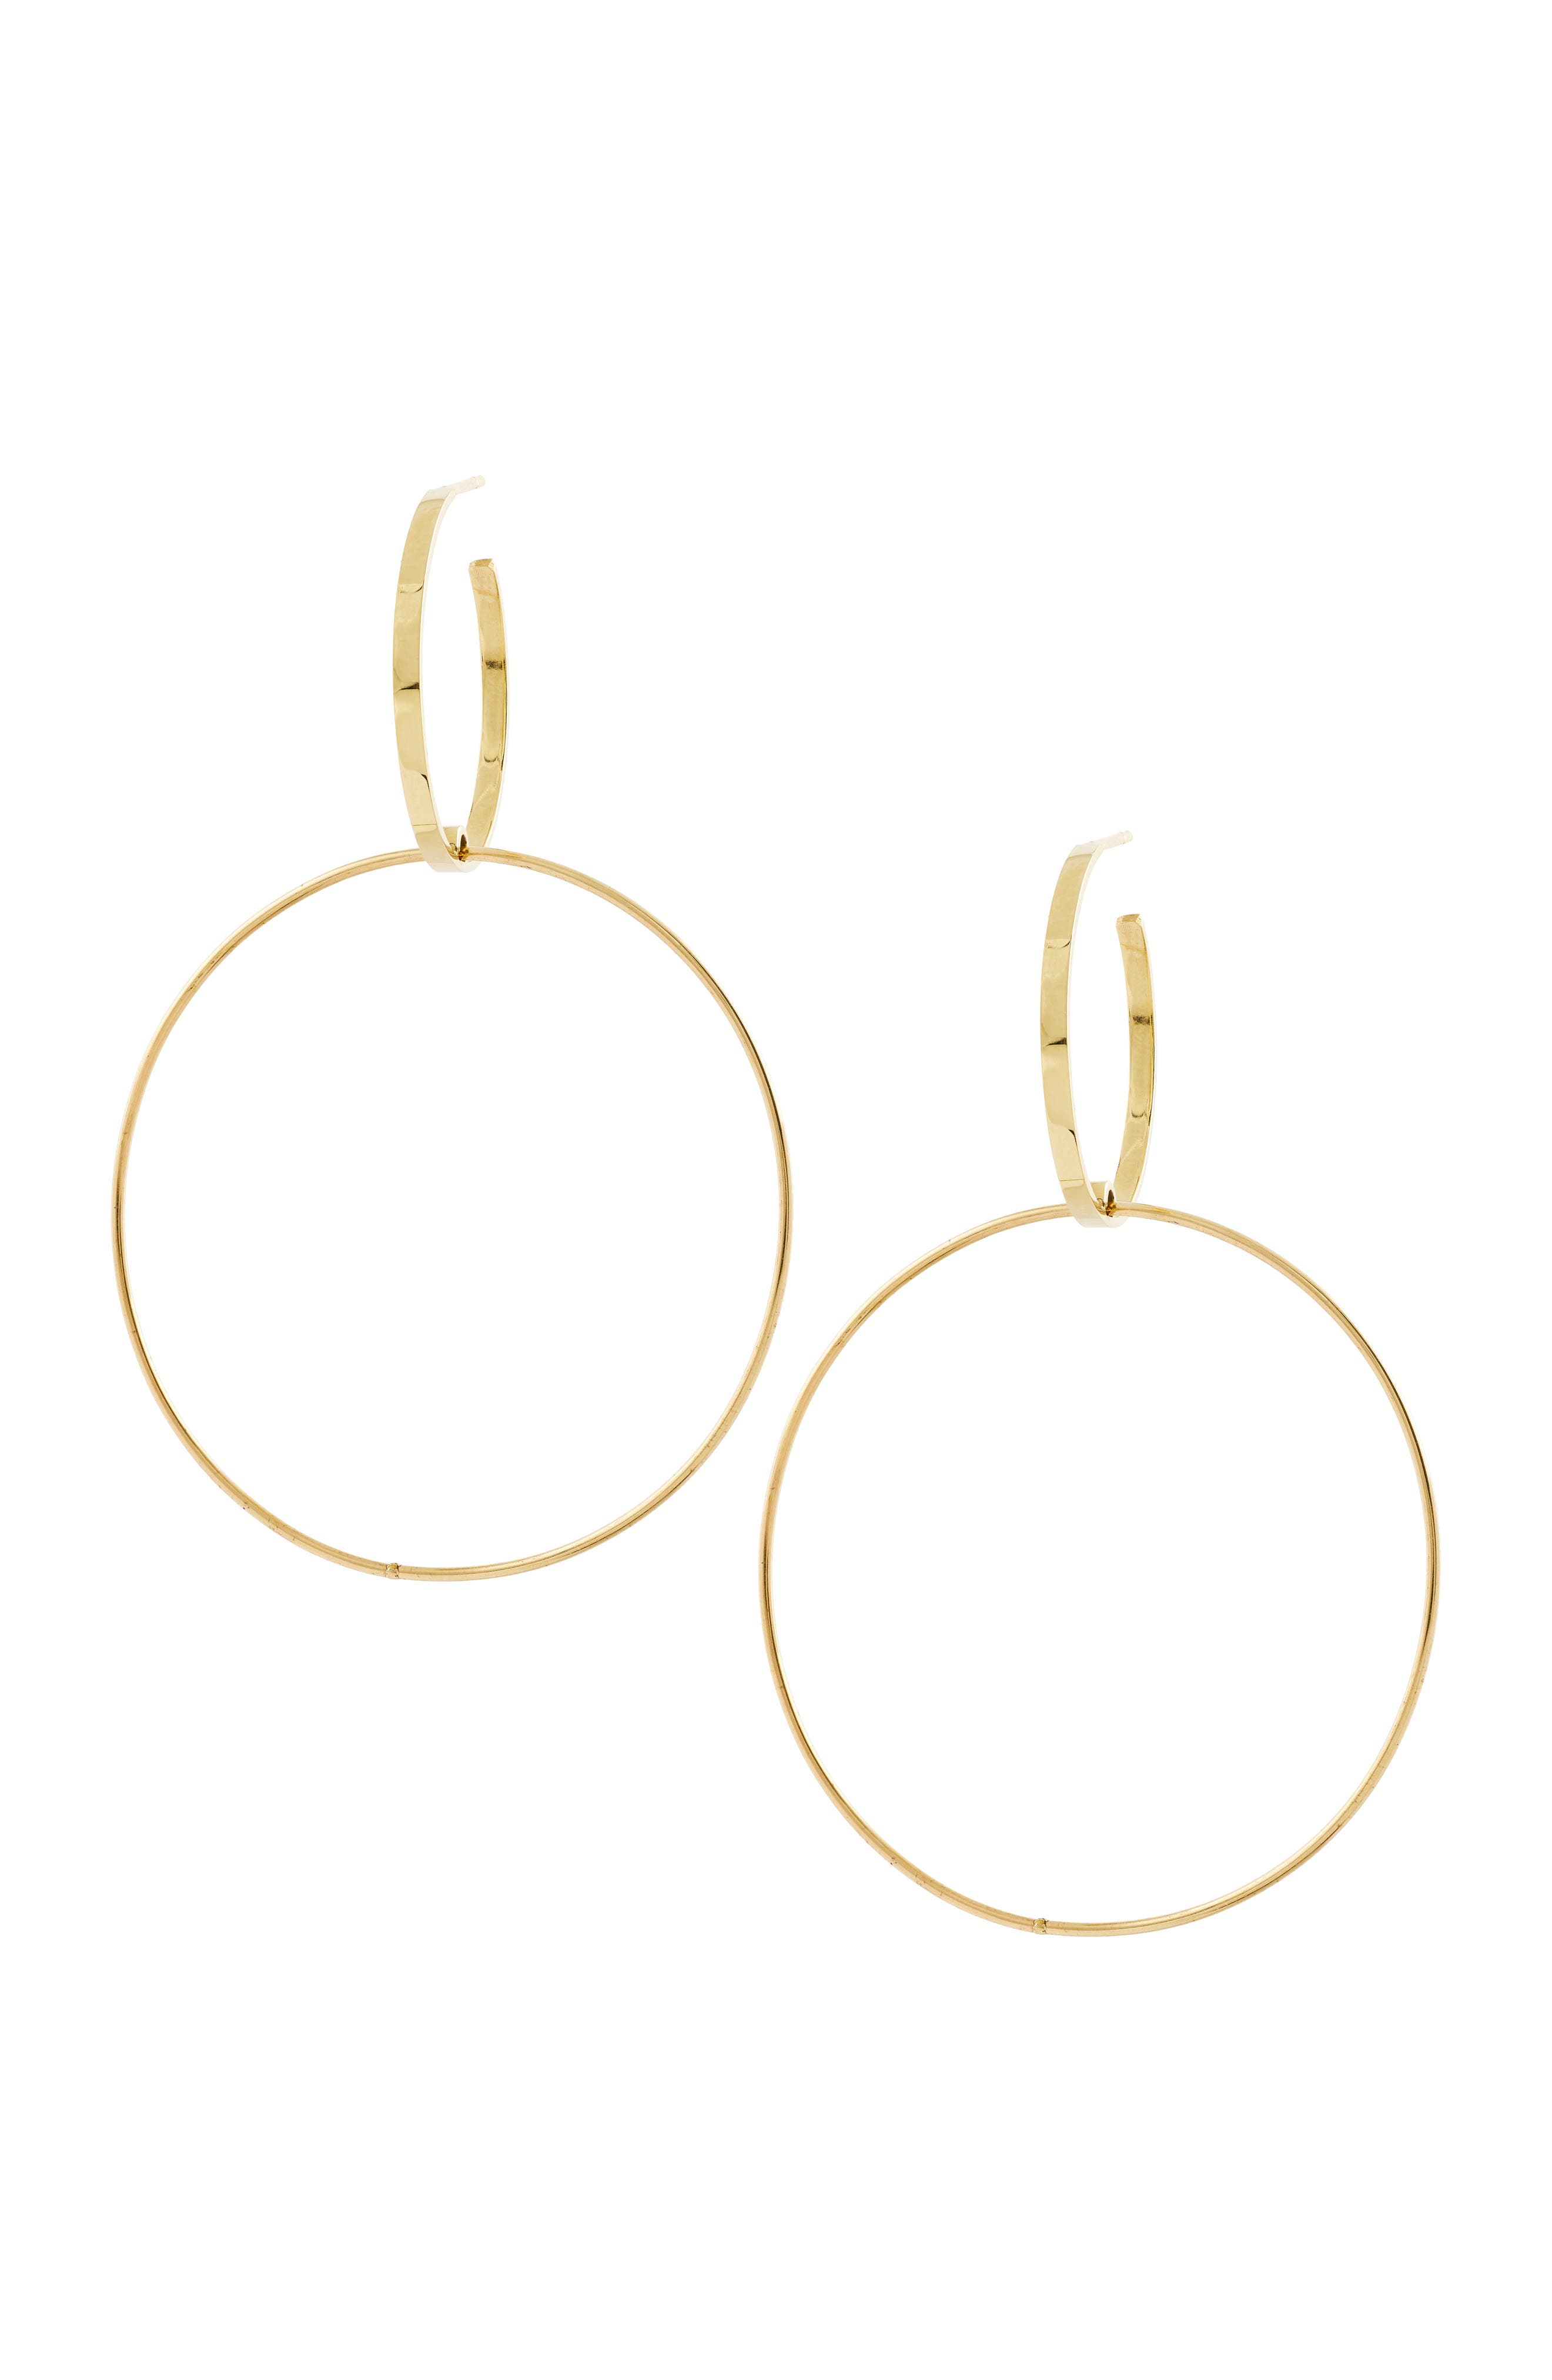 LANA JEWELRY Double Bond Hoop Earrings